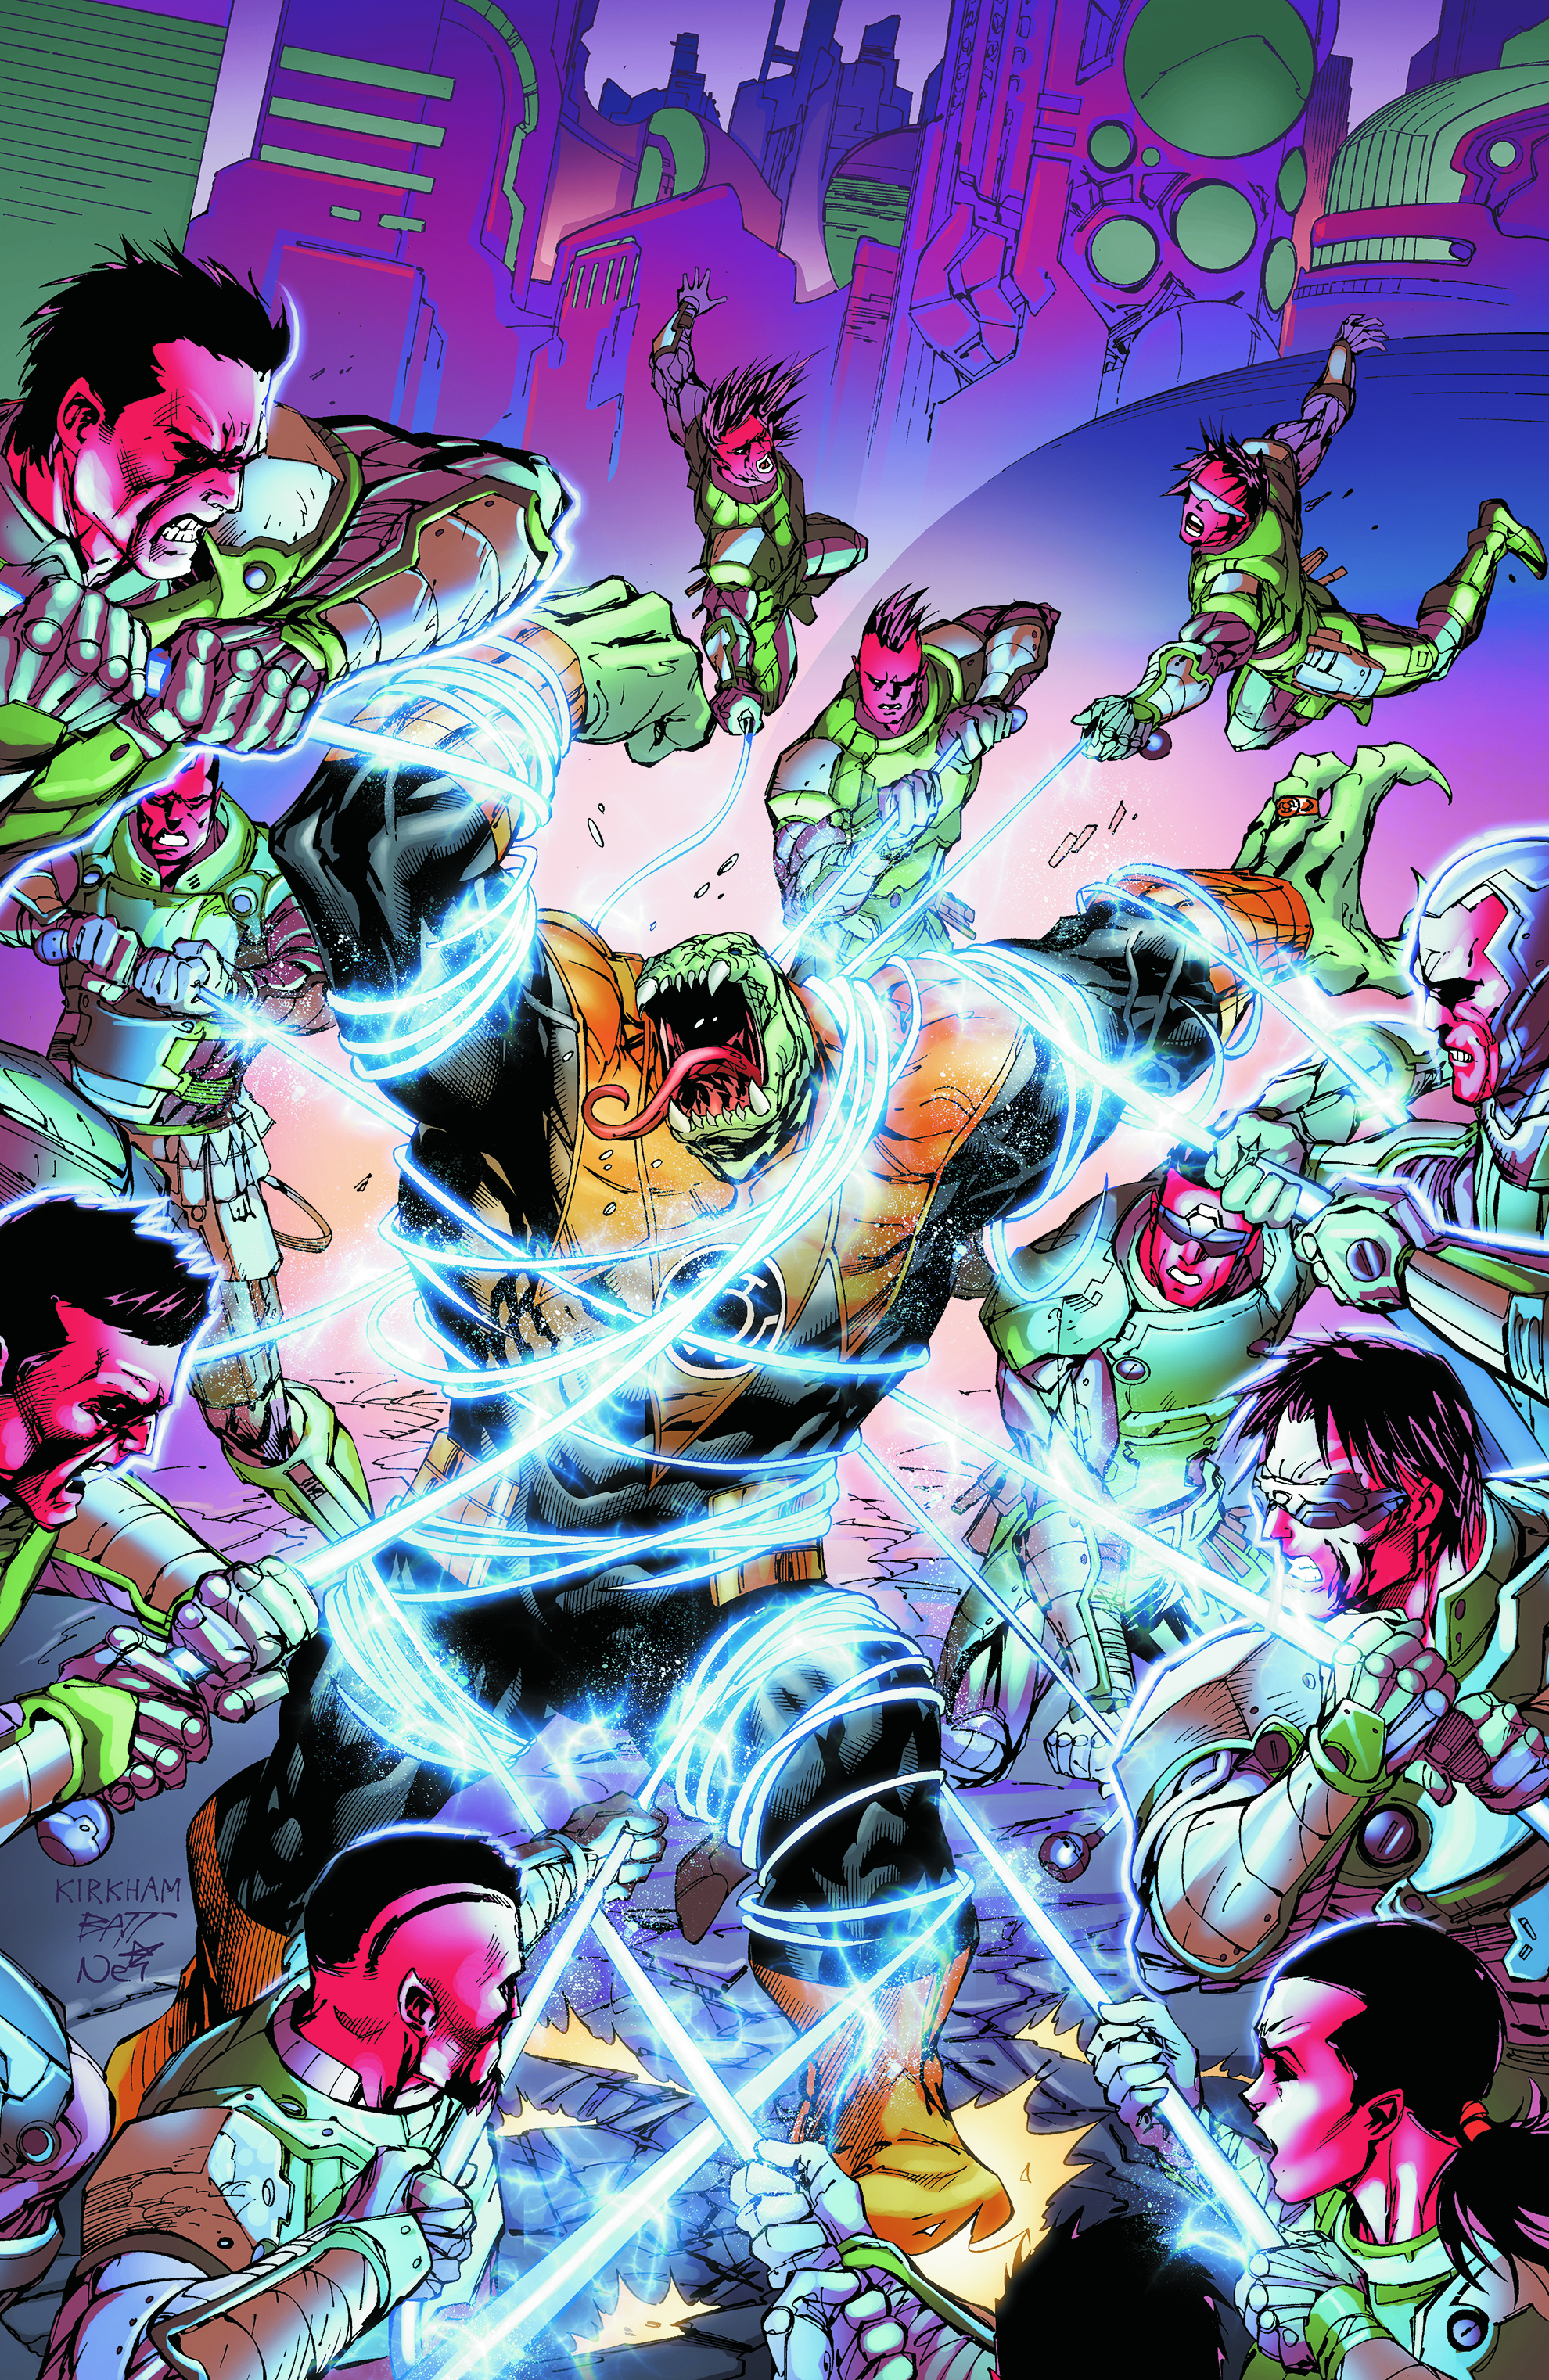 GREEN LANTERN NEW GUARDIANS #8